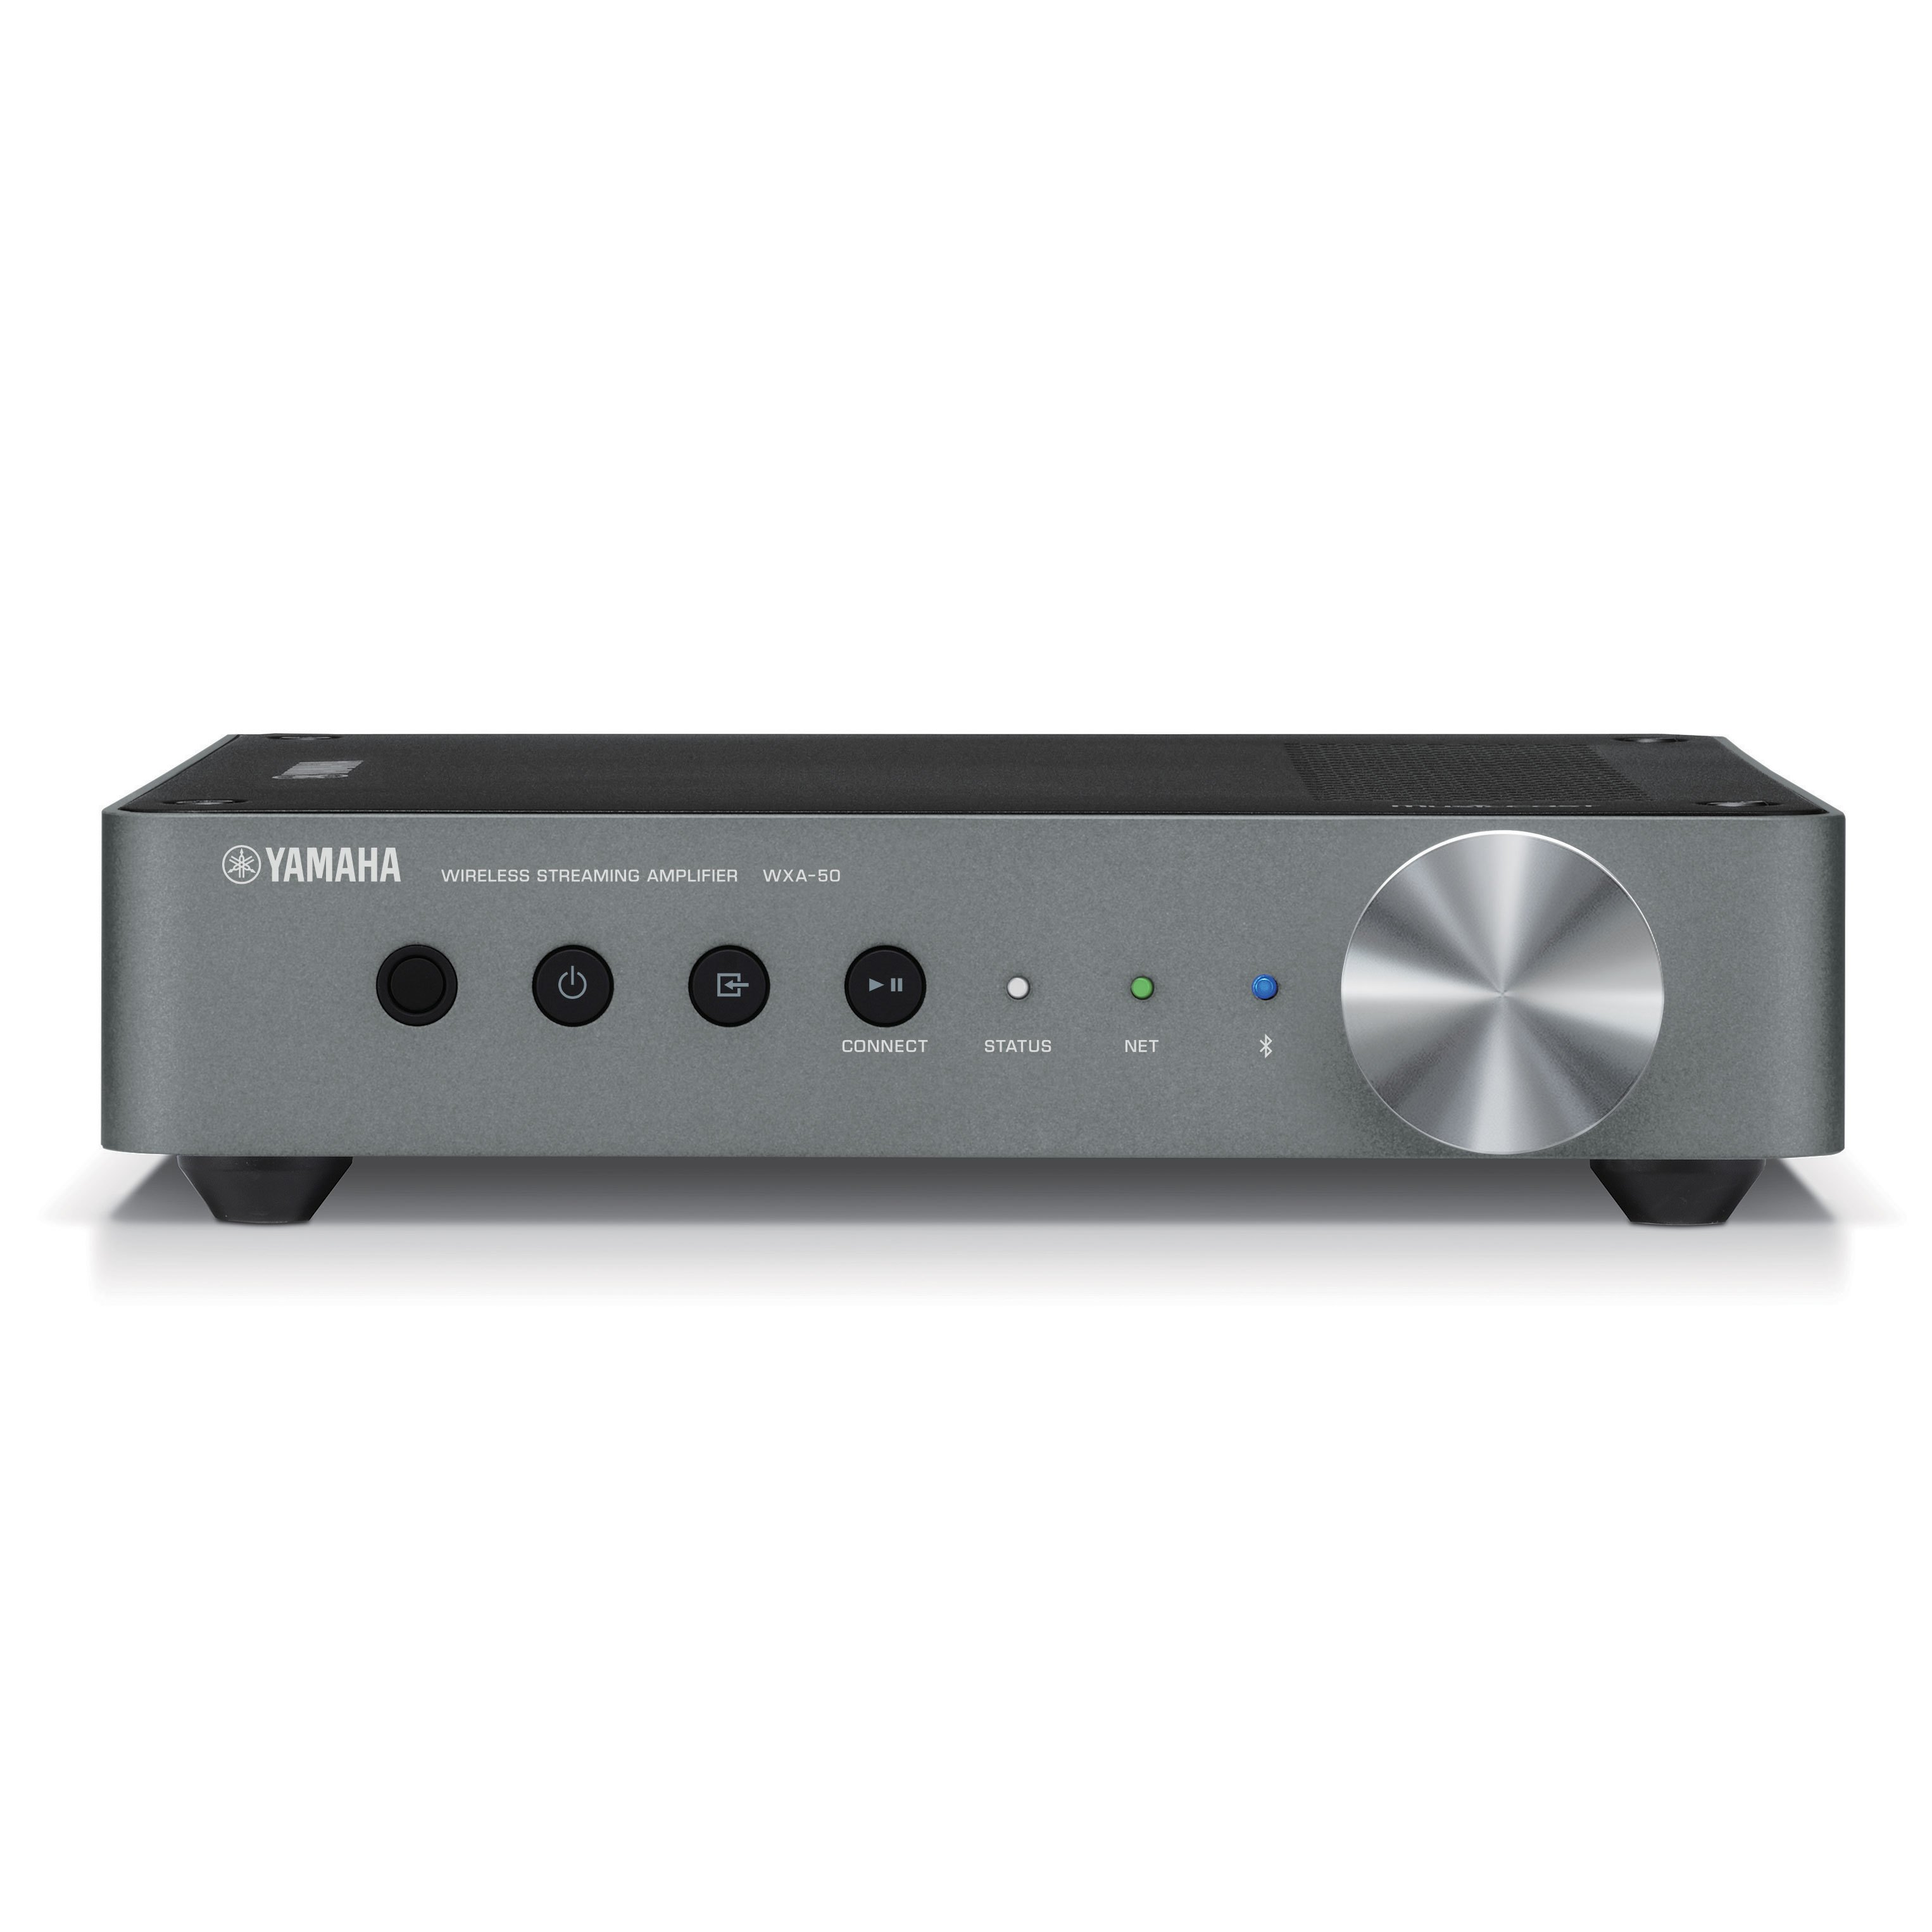 Wxa 50 Overview Wireless Streaming Amplifiers Audio Visual Amplifier Products Yamaha United States